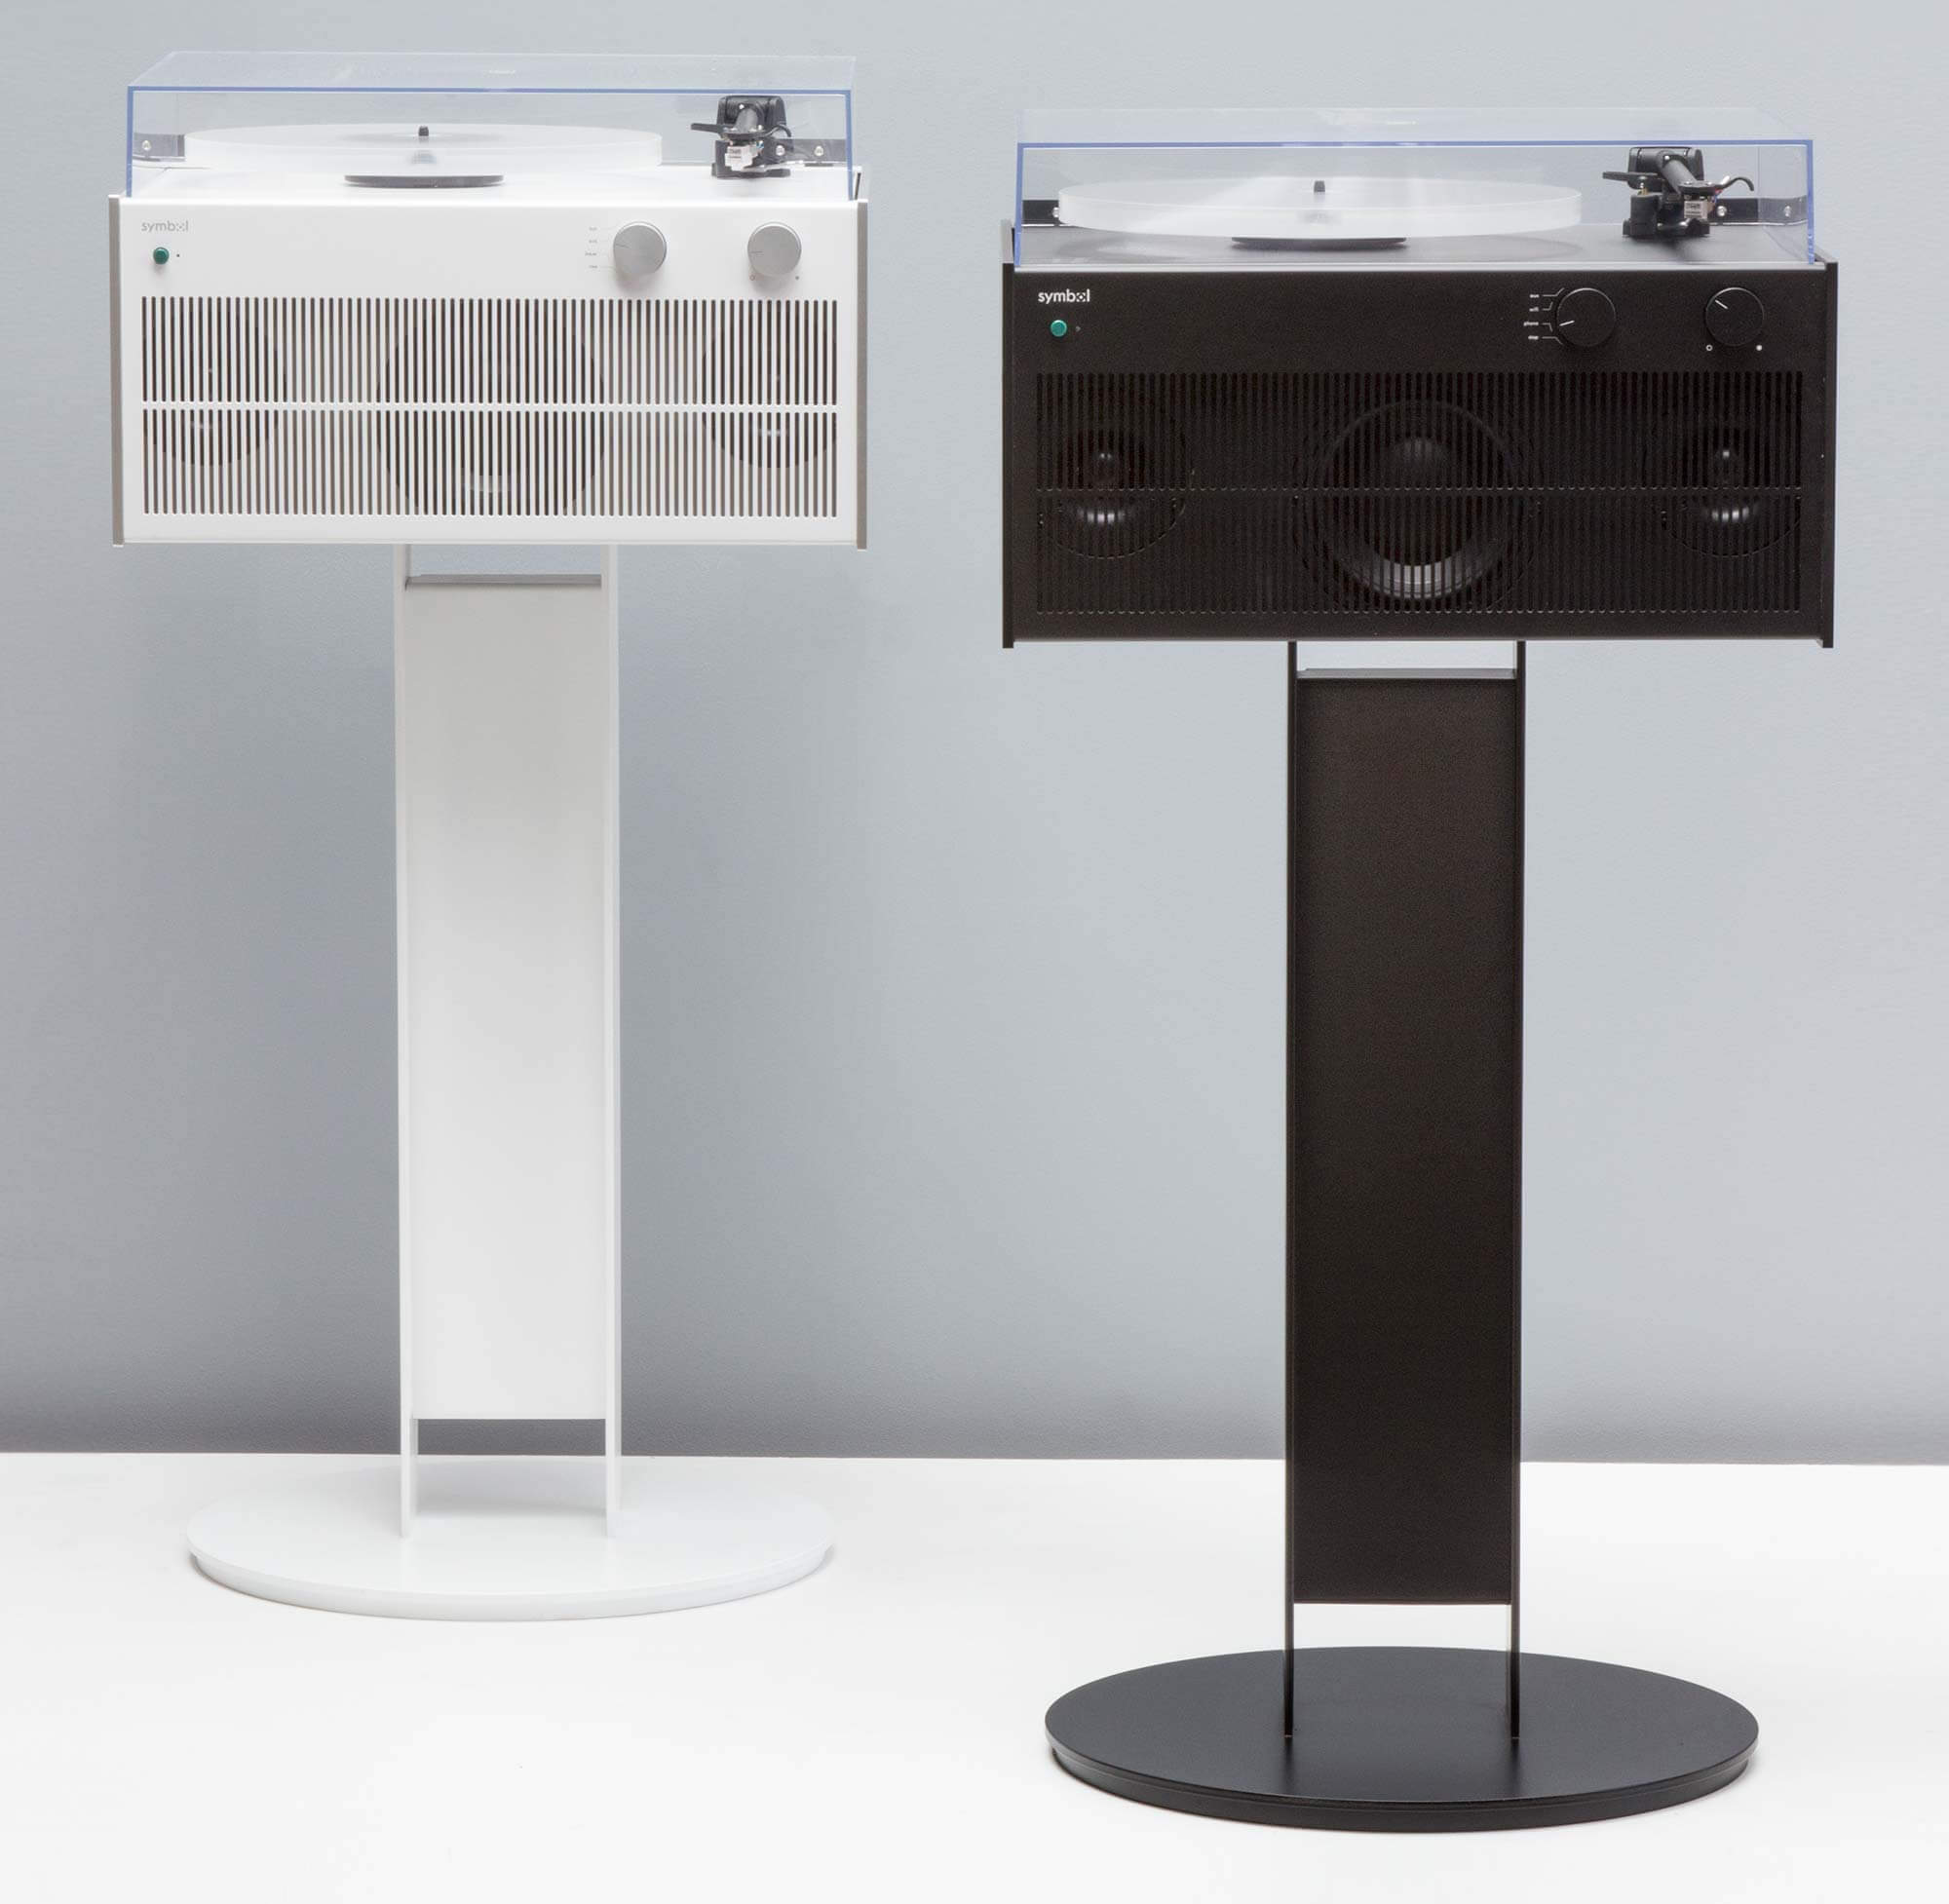 Modern Record Players (black and white themed) with custom-built class-AB amplifiers and three-source selector switch for phono, auxiliary, or wireless use.